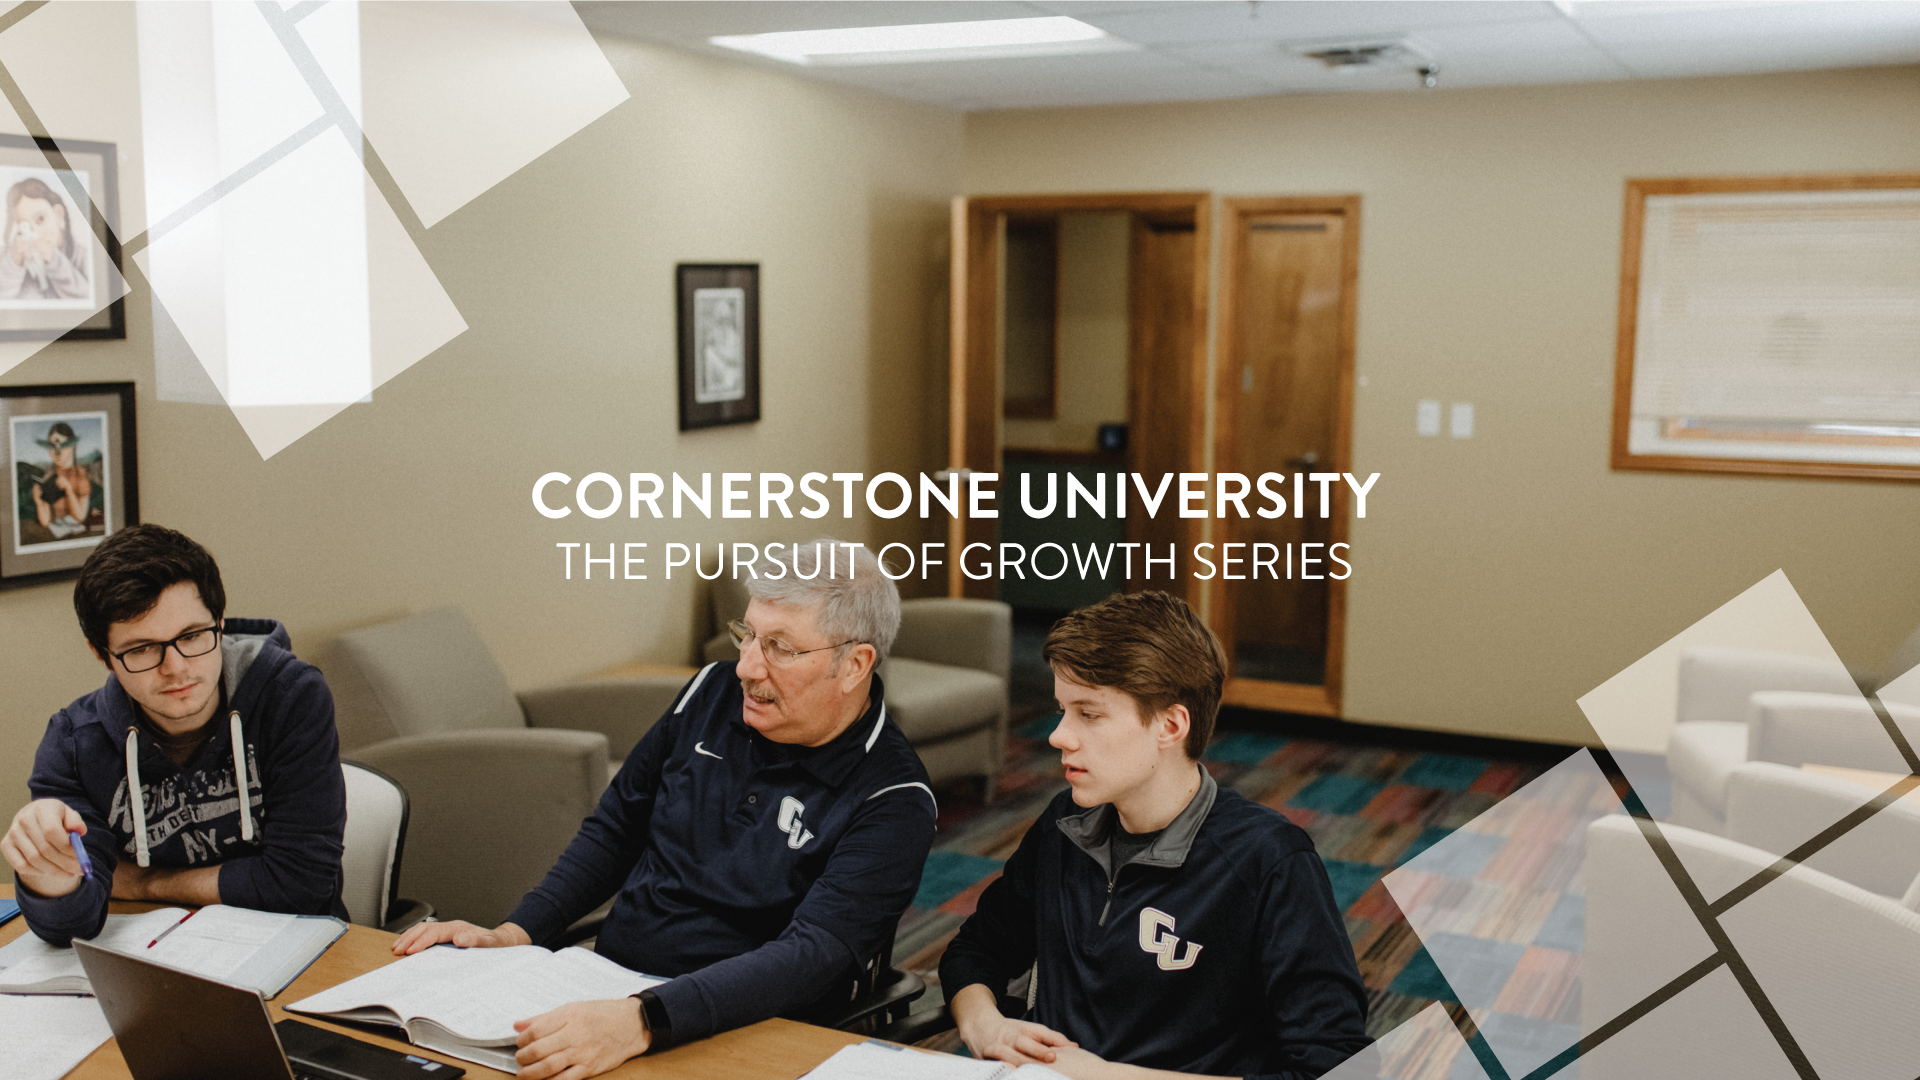 Cornerstone-University-Why-CU-Video-Marketing-Series.png